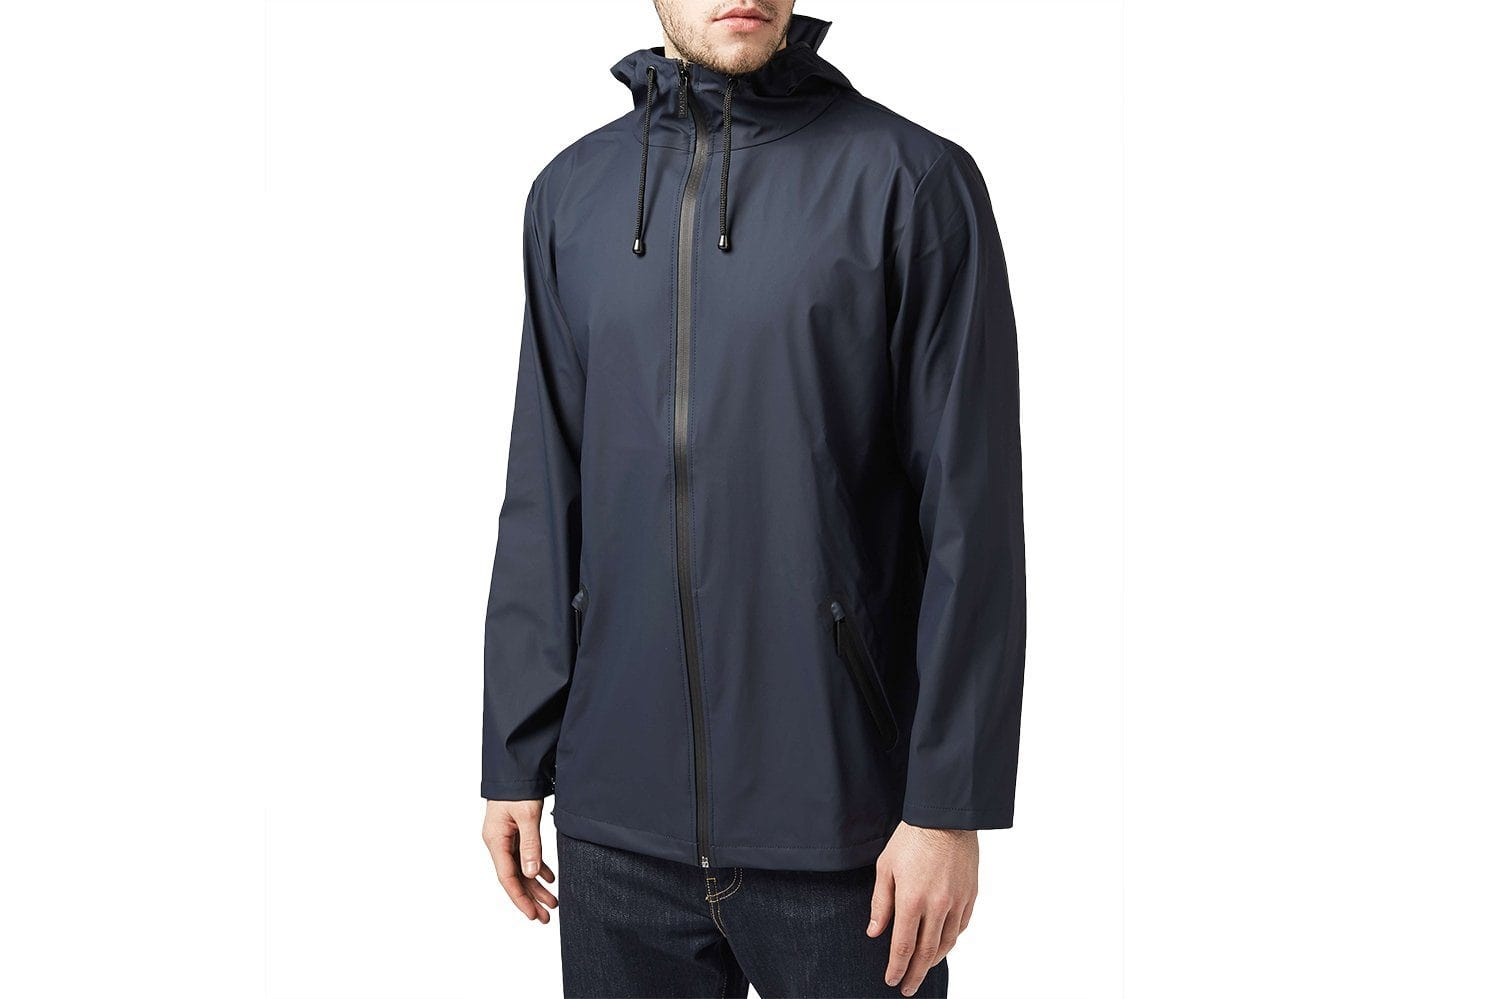 BREAKER JACKET MENS SOFTGOODS RAINS